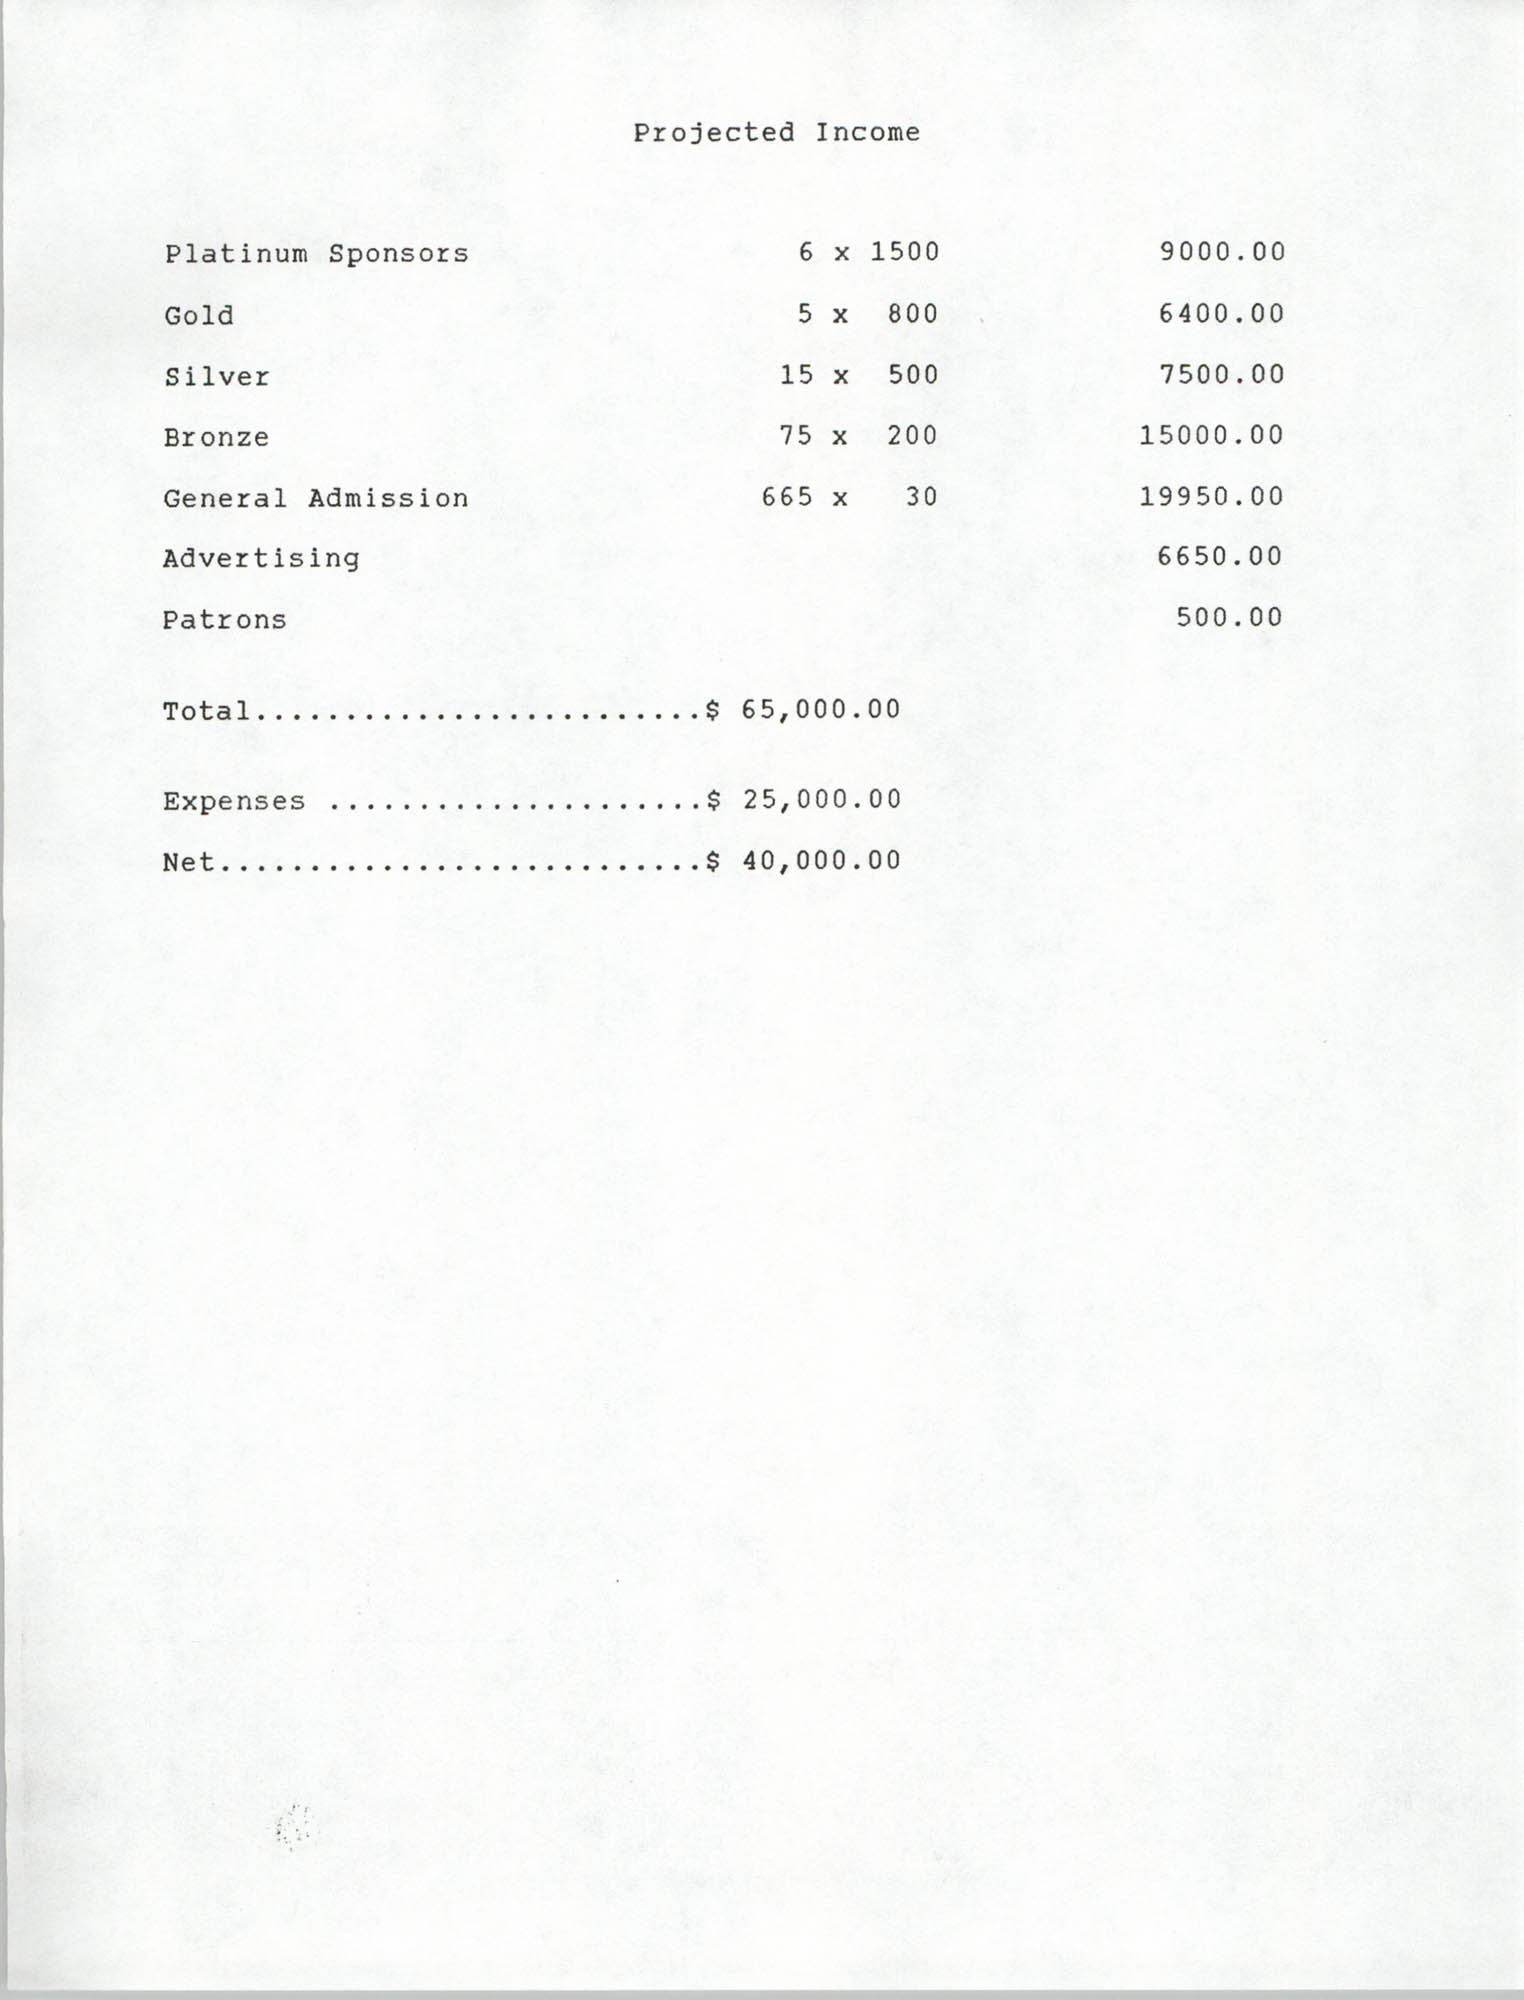 List of Projected Income